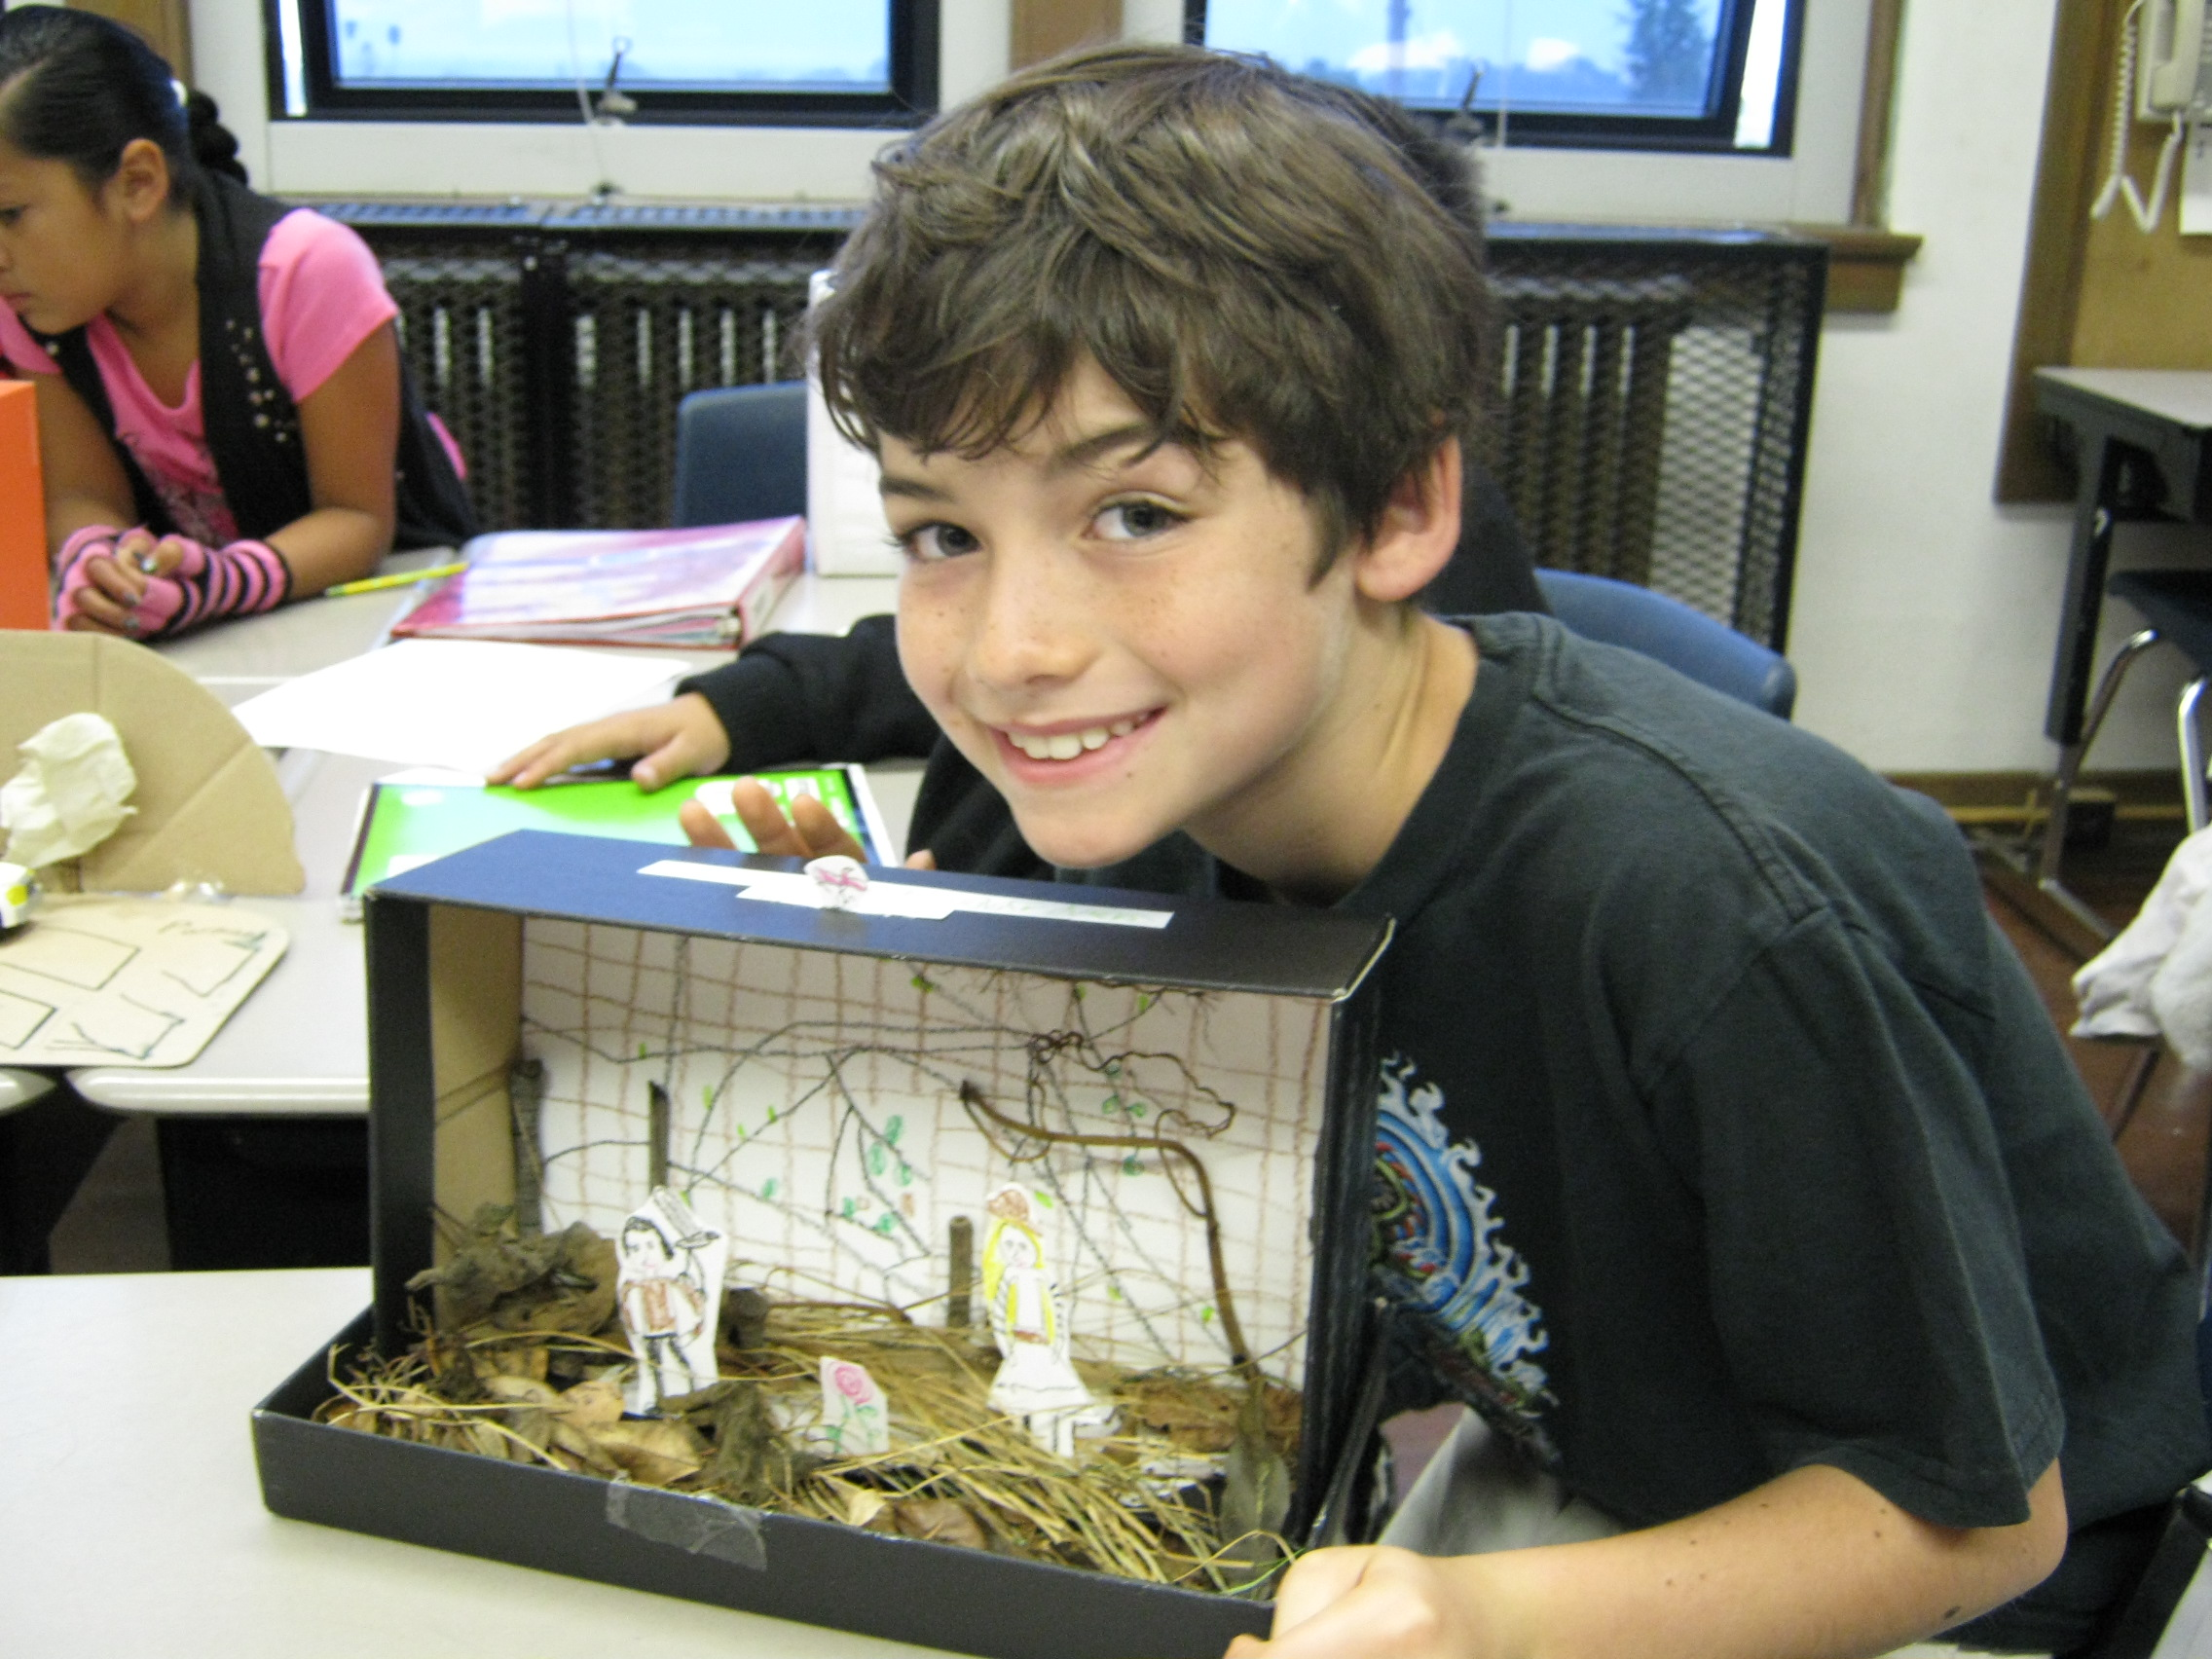 shoebox diorama book report Book report s  your assignment is to design a shoe box diorama related to  your book    erts inside box: the inside of your diorama must reflect.